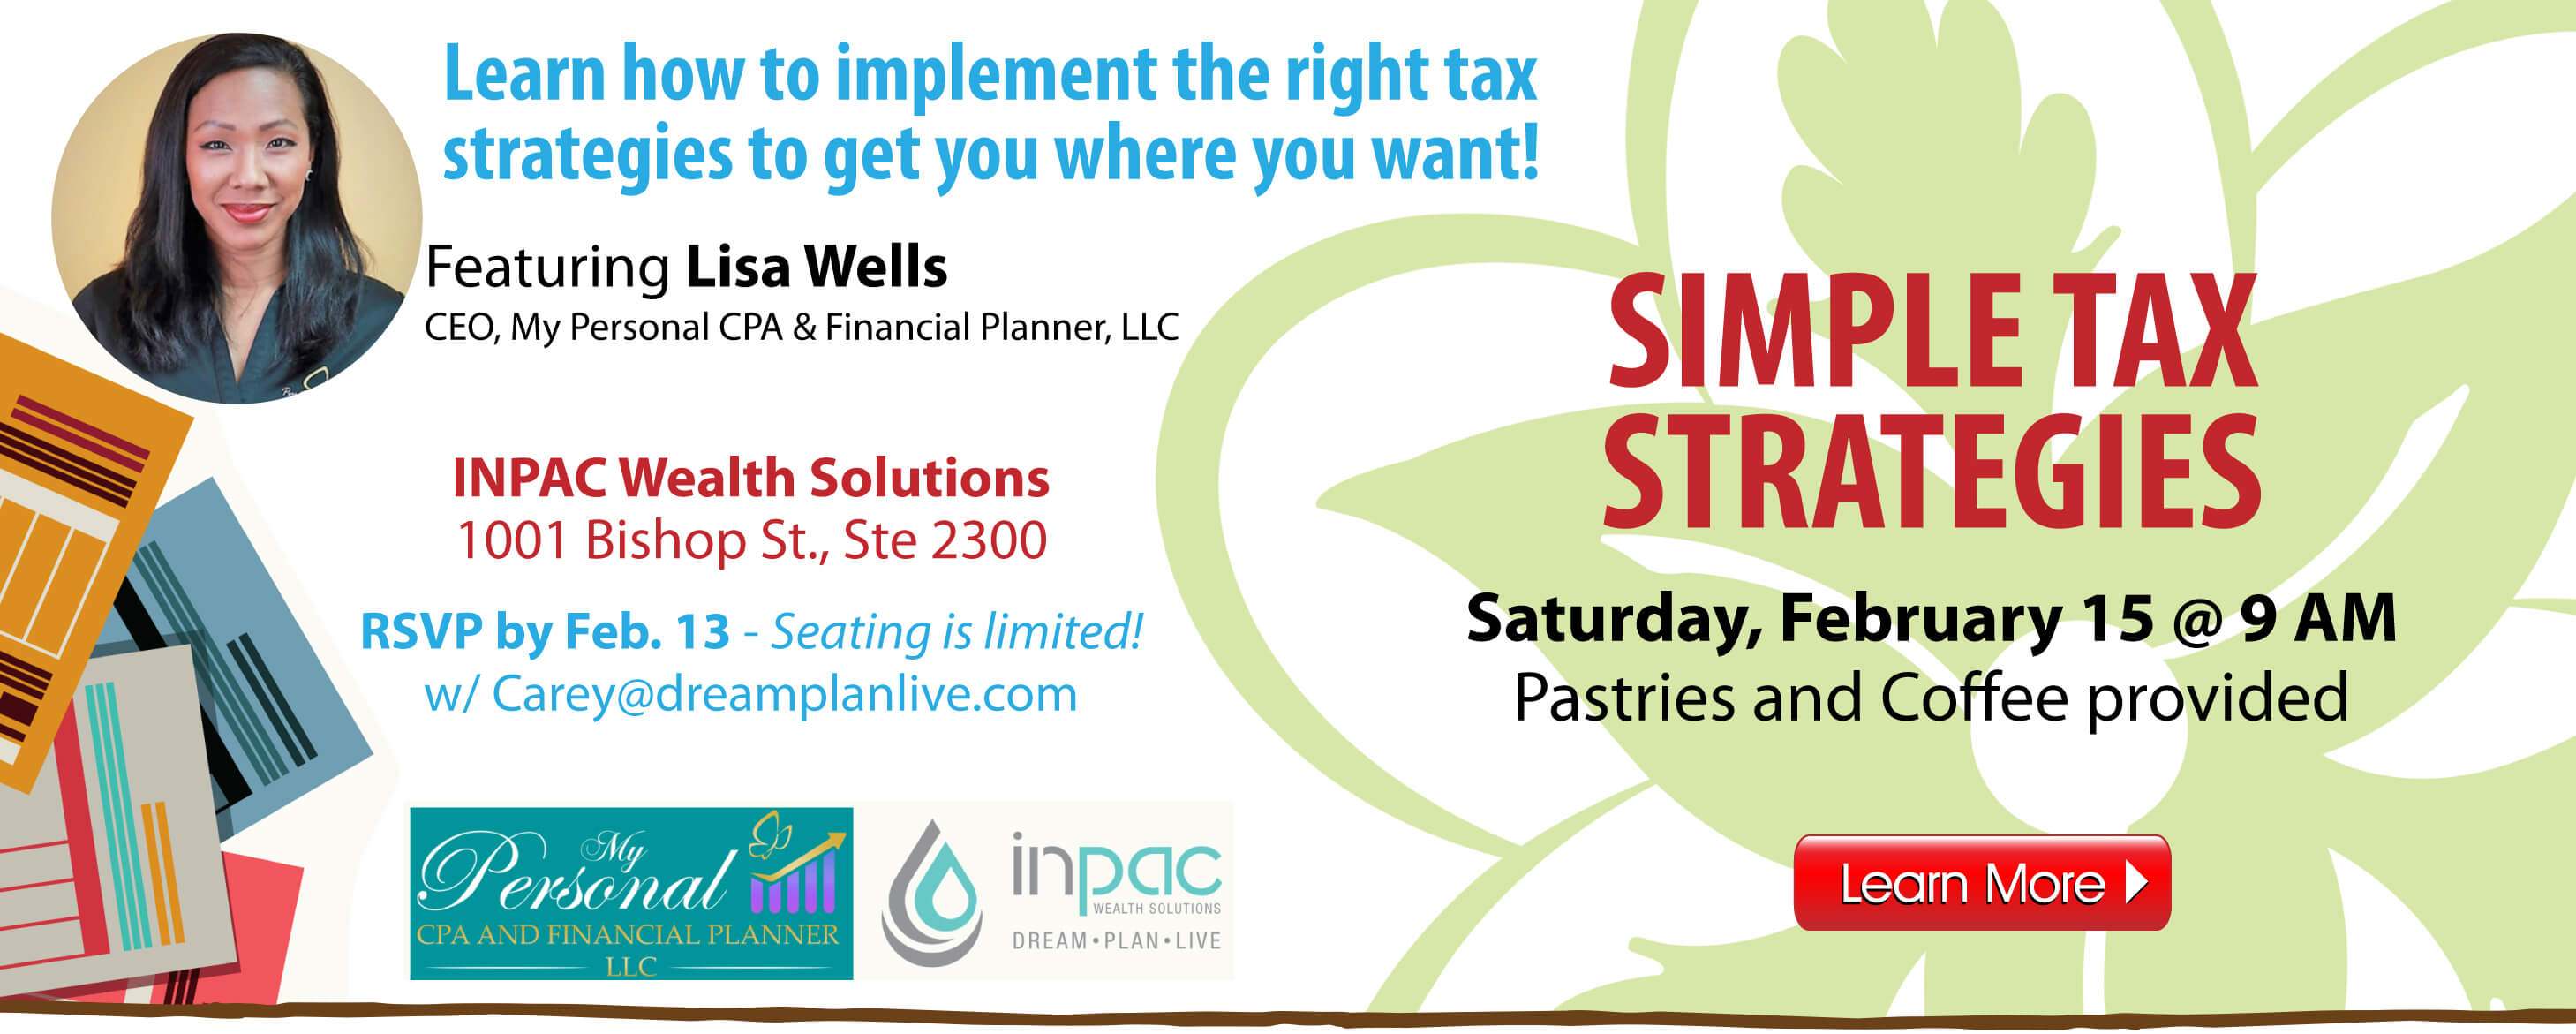 Simple Tax Strategies Seminar on Saturday, February 15.  RSVP today!